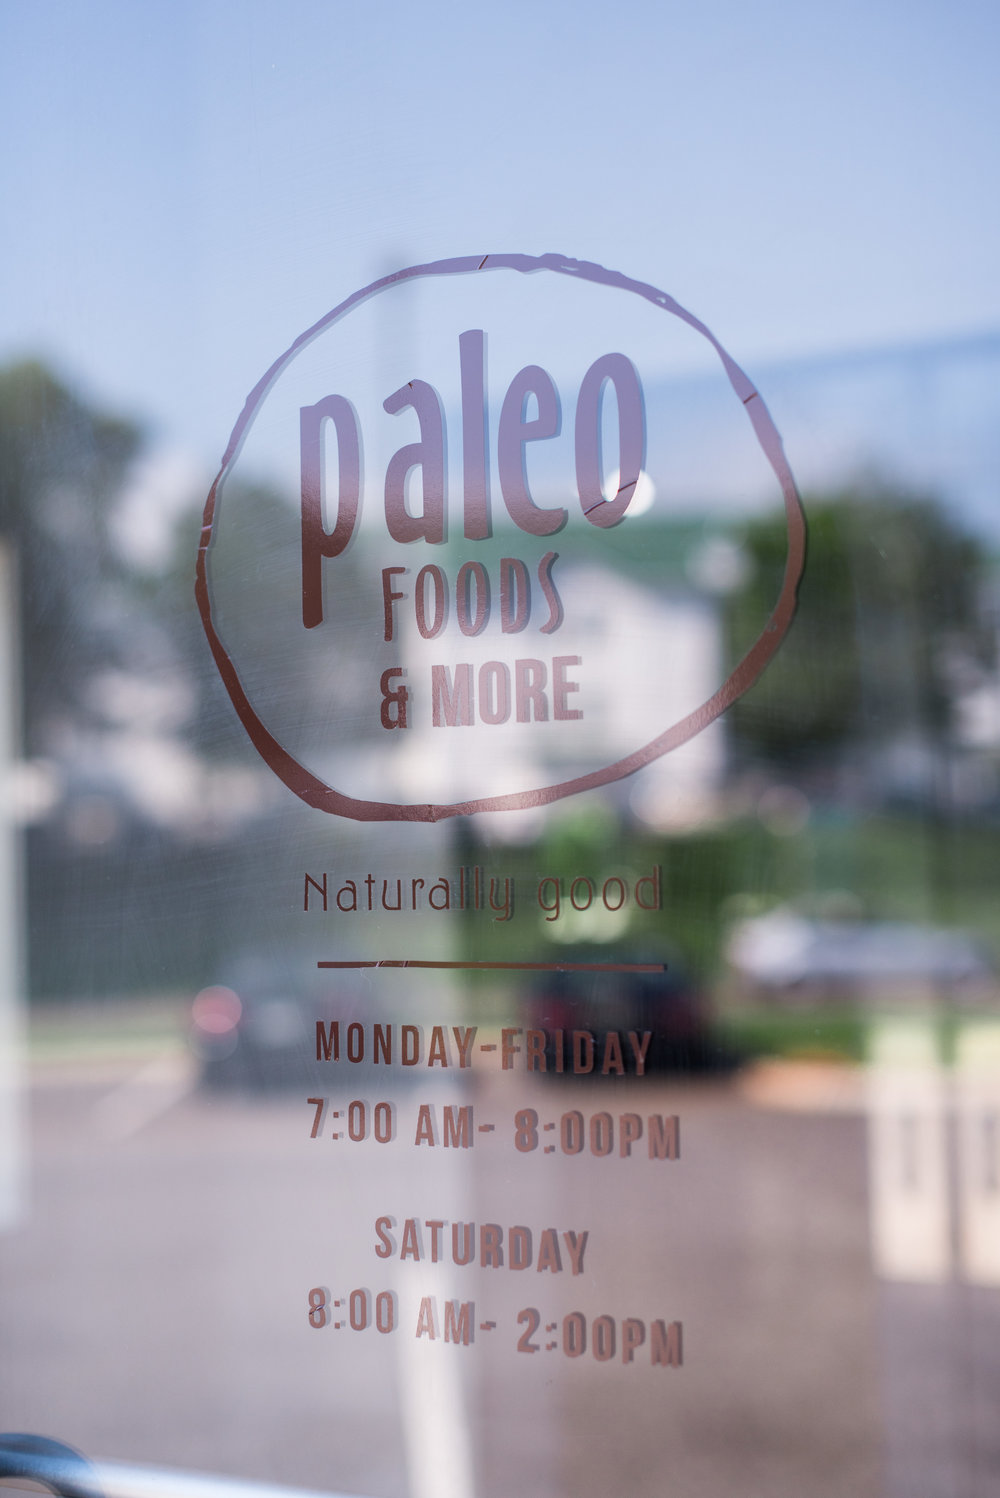 I Love Local Knoxville, TN Paleo Foods Cafe-6744.jpg